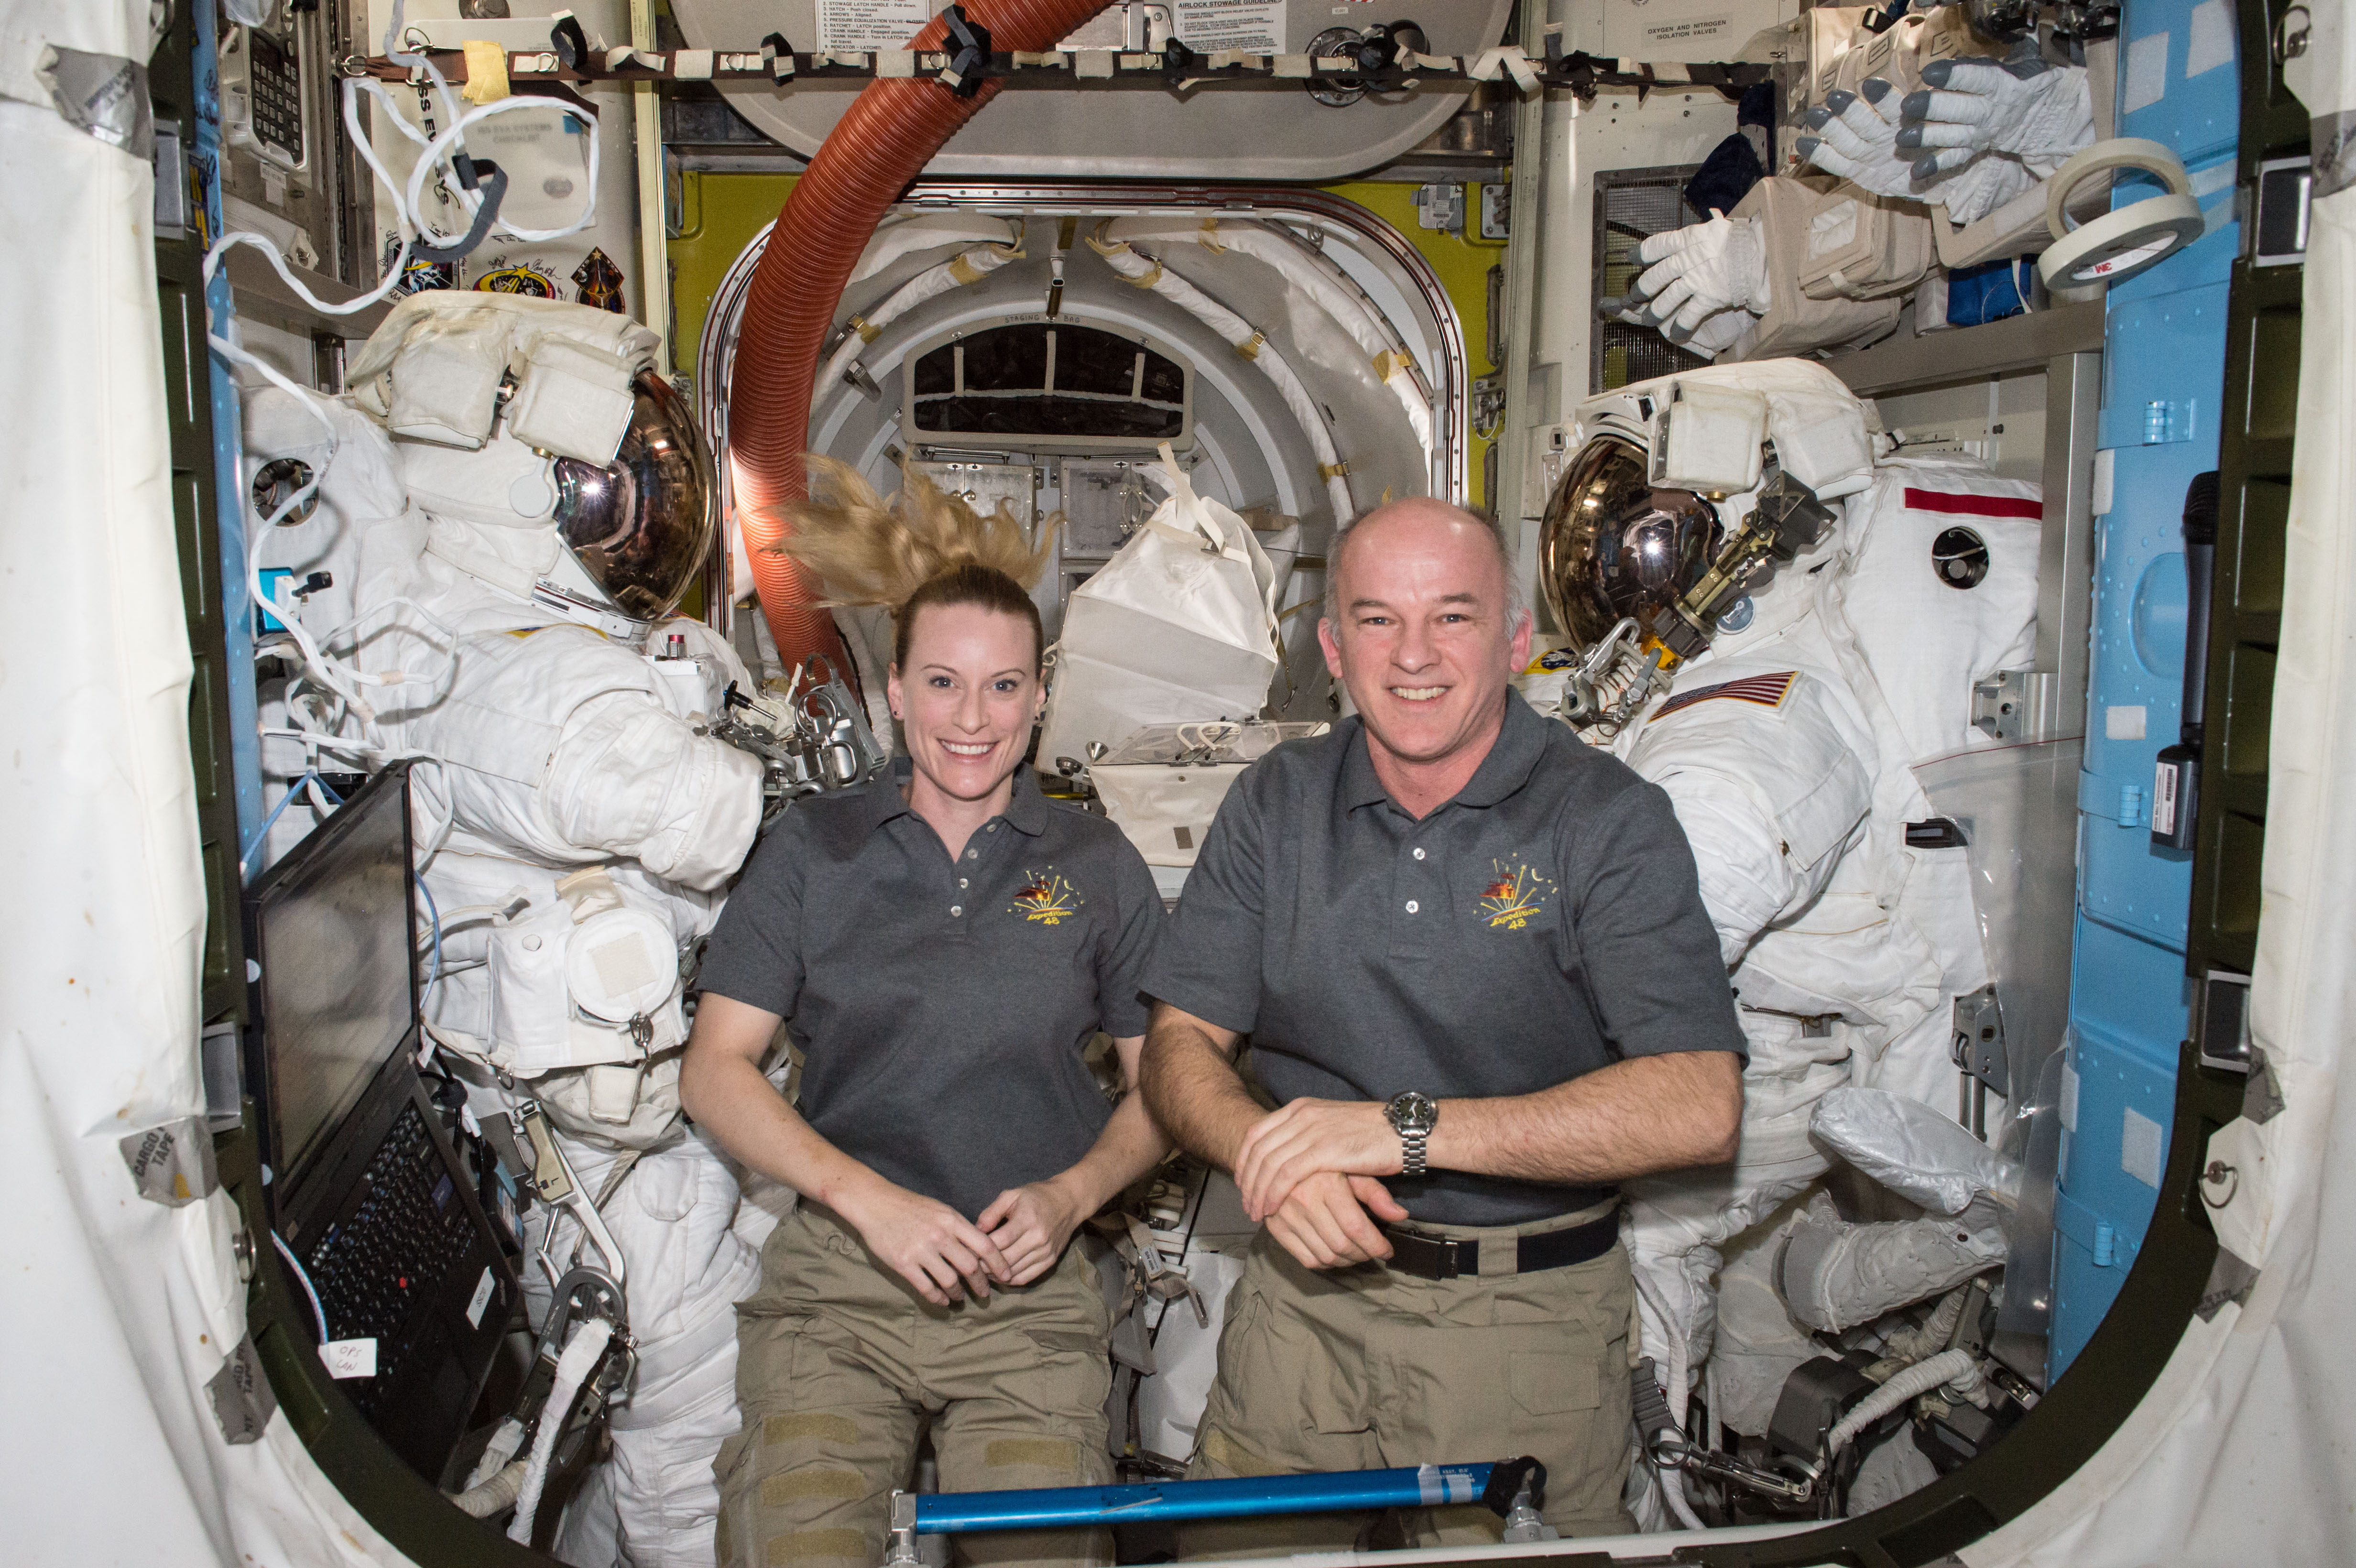 Astronauts Kate Rubins and Jeff Williams